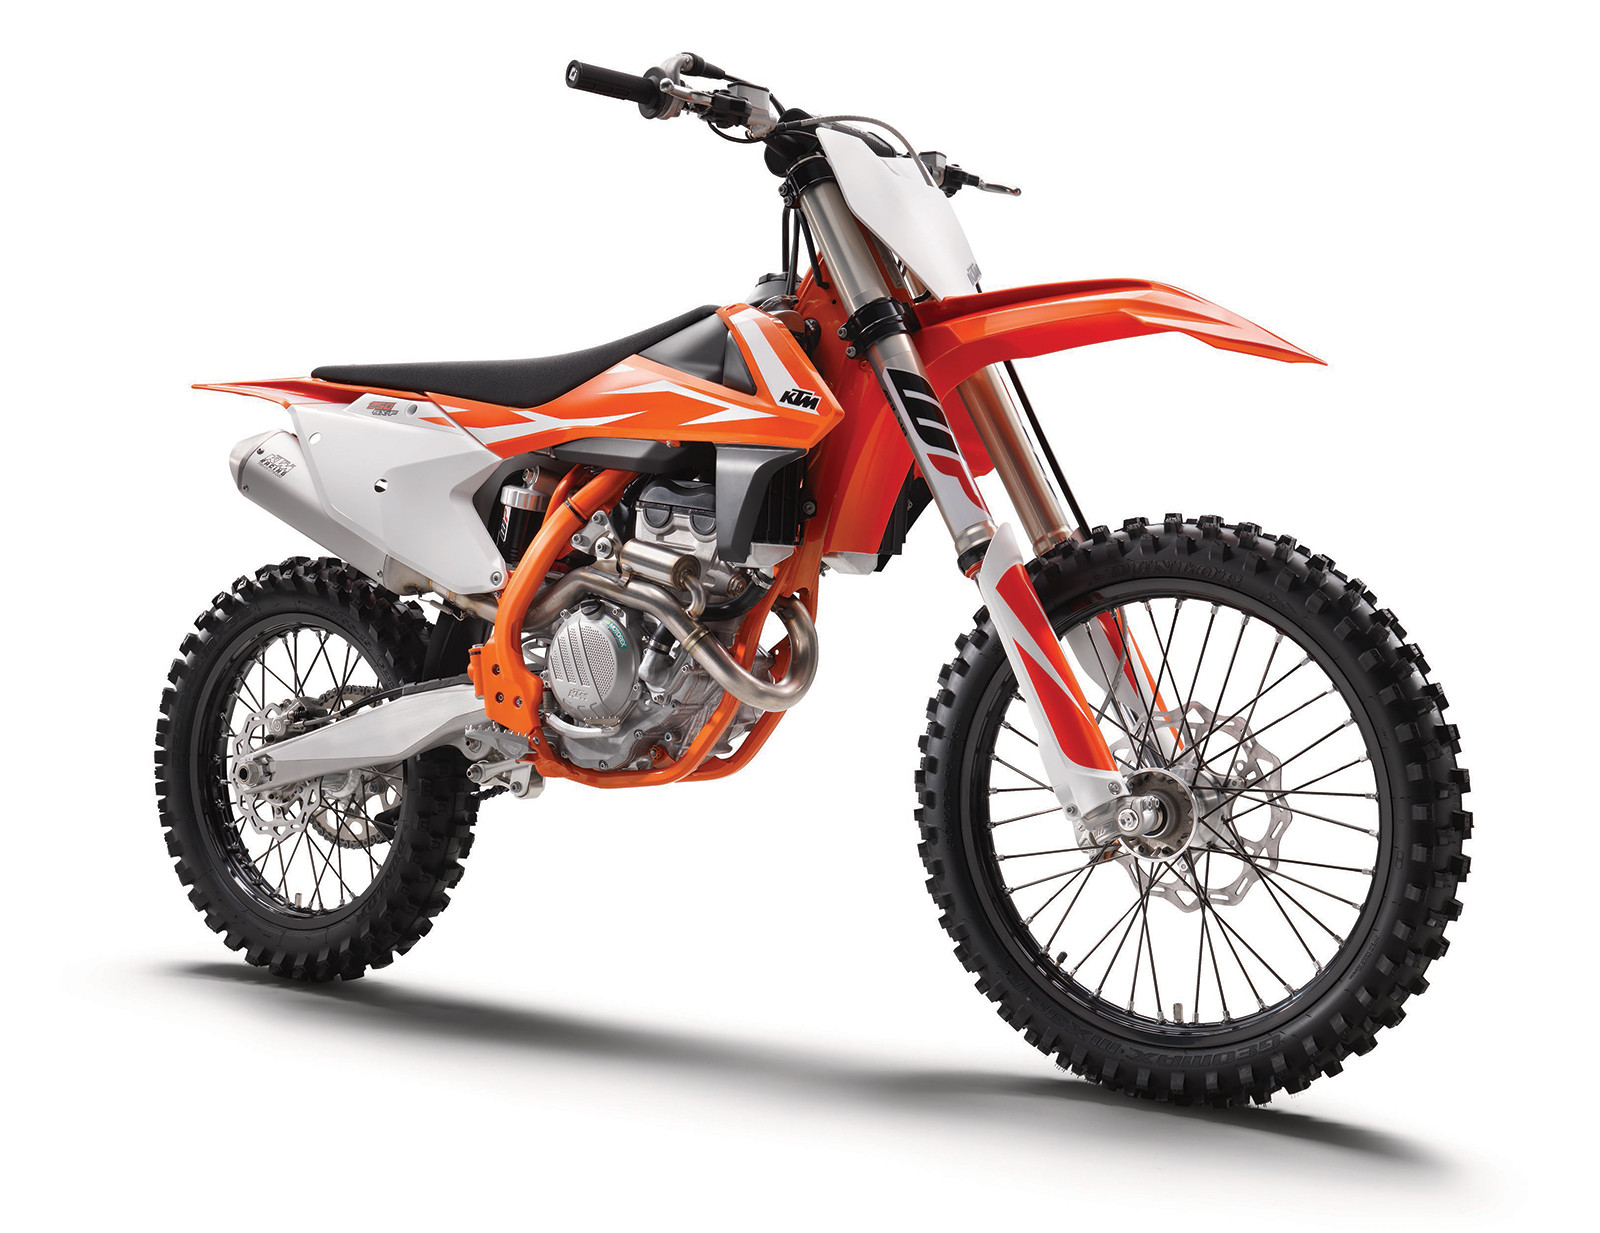 2018 ktm 125 sx. delighful 125 2018 ktm 250 sxf with ktm 125 sx 1